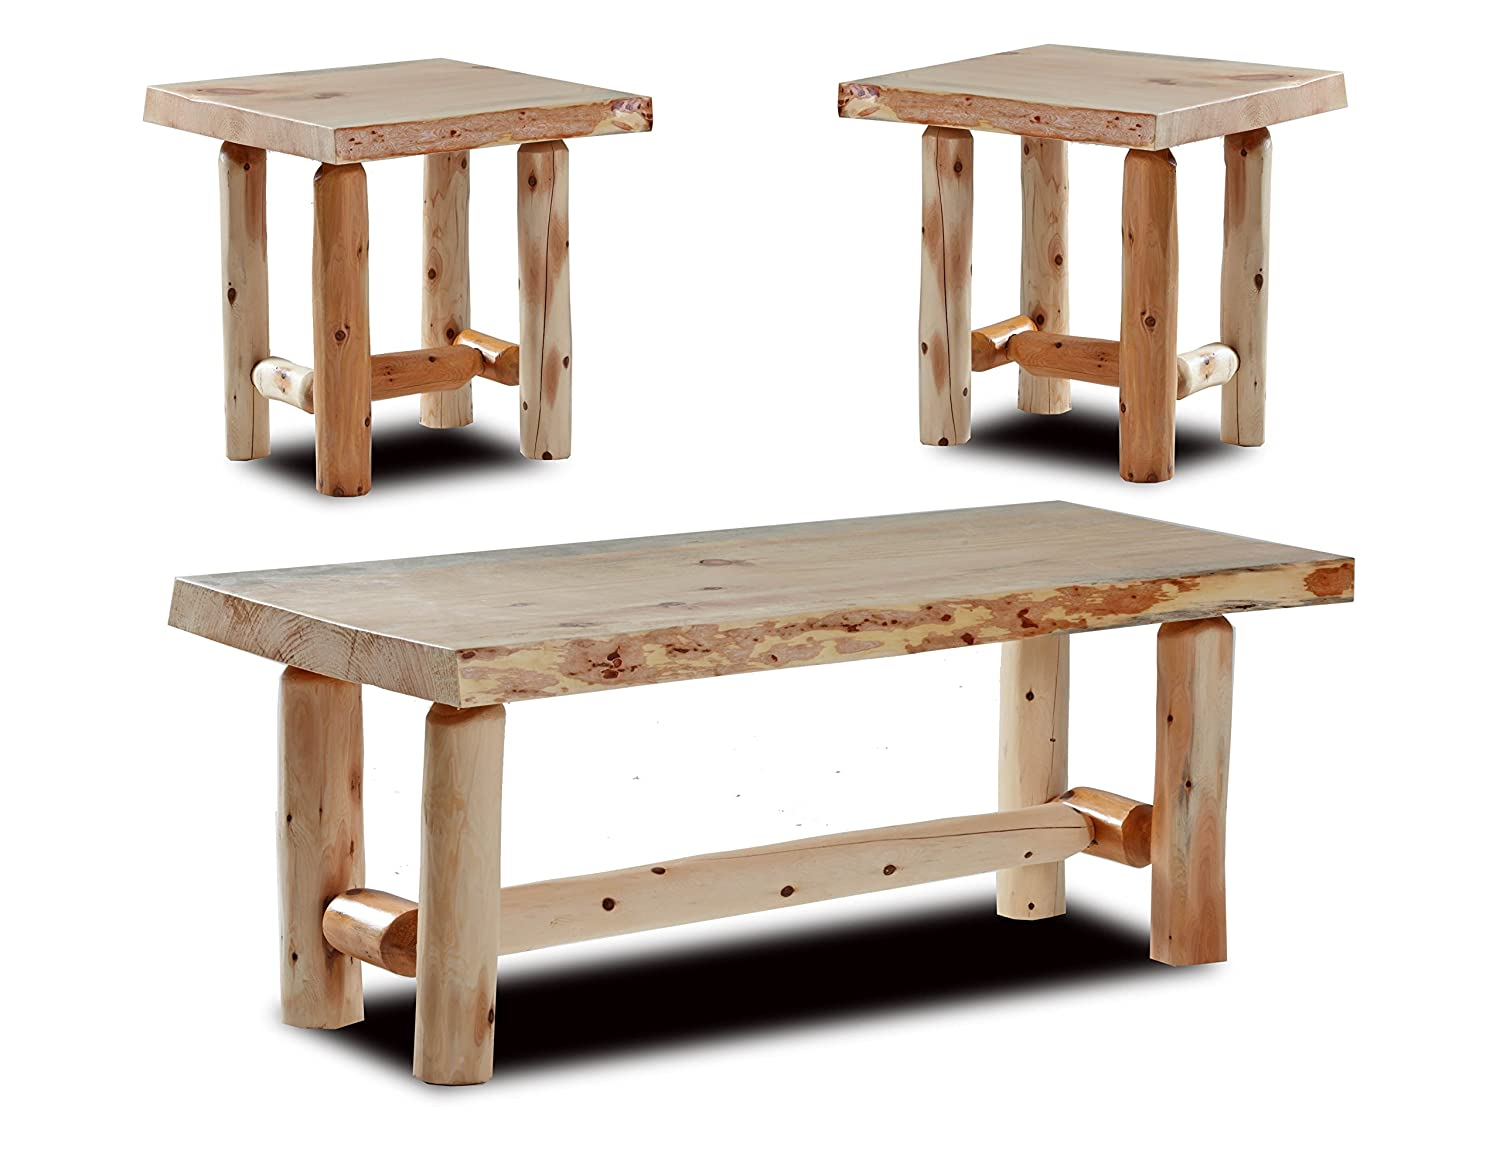 Amazon.com Rustic Log Coffee and End Table Set Pine and Cedar (Honey Pine) Kitchen \u0026 Dining  sc 1 st  Amazon.com & Amazon.com: Rustic Log Coffee and End Table Set Pine and Cedar ...